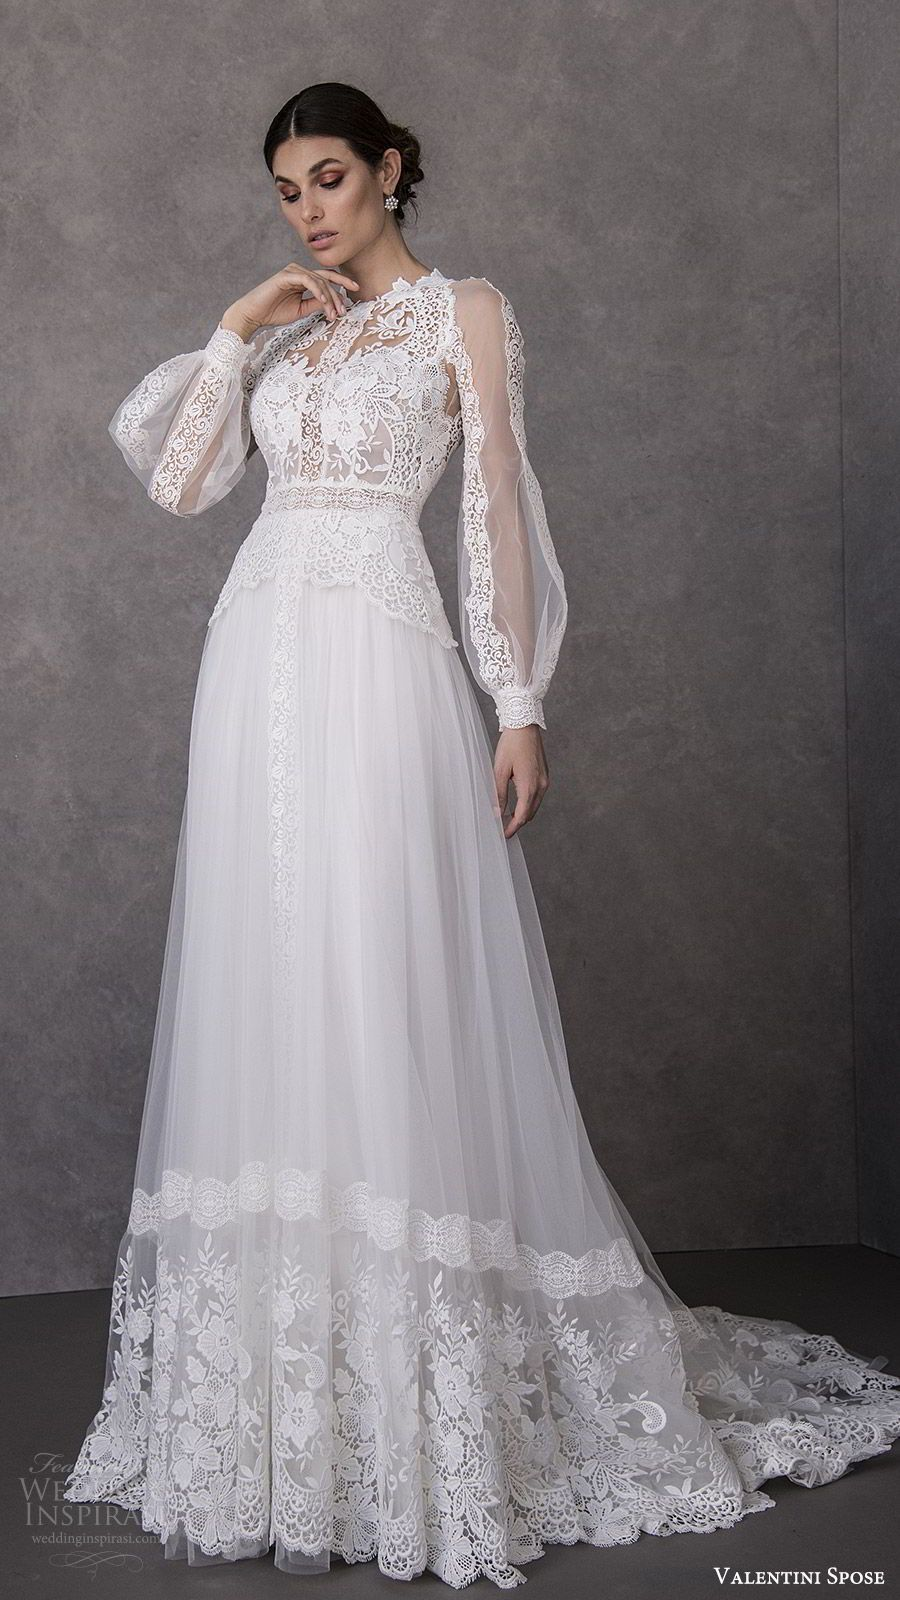 Valentini Spose Spring 2020 Wedding Dresses in 2020